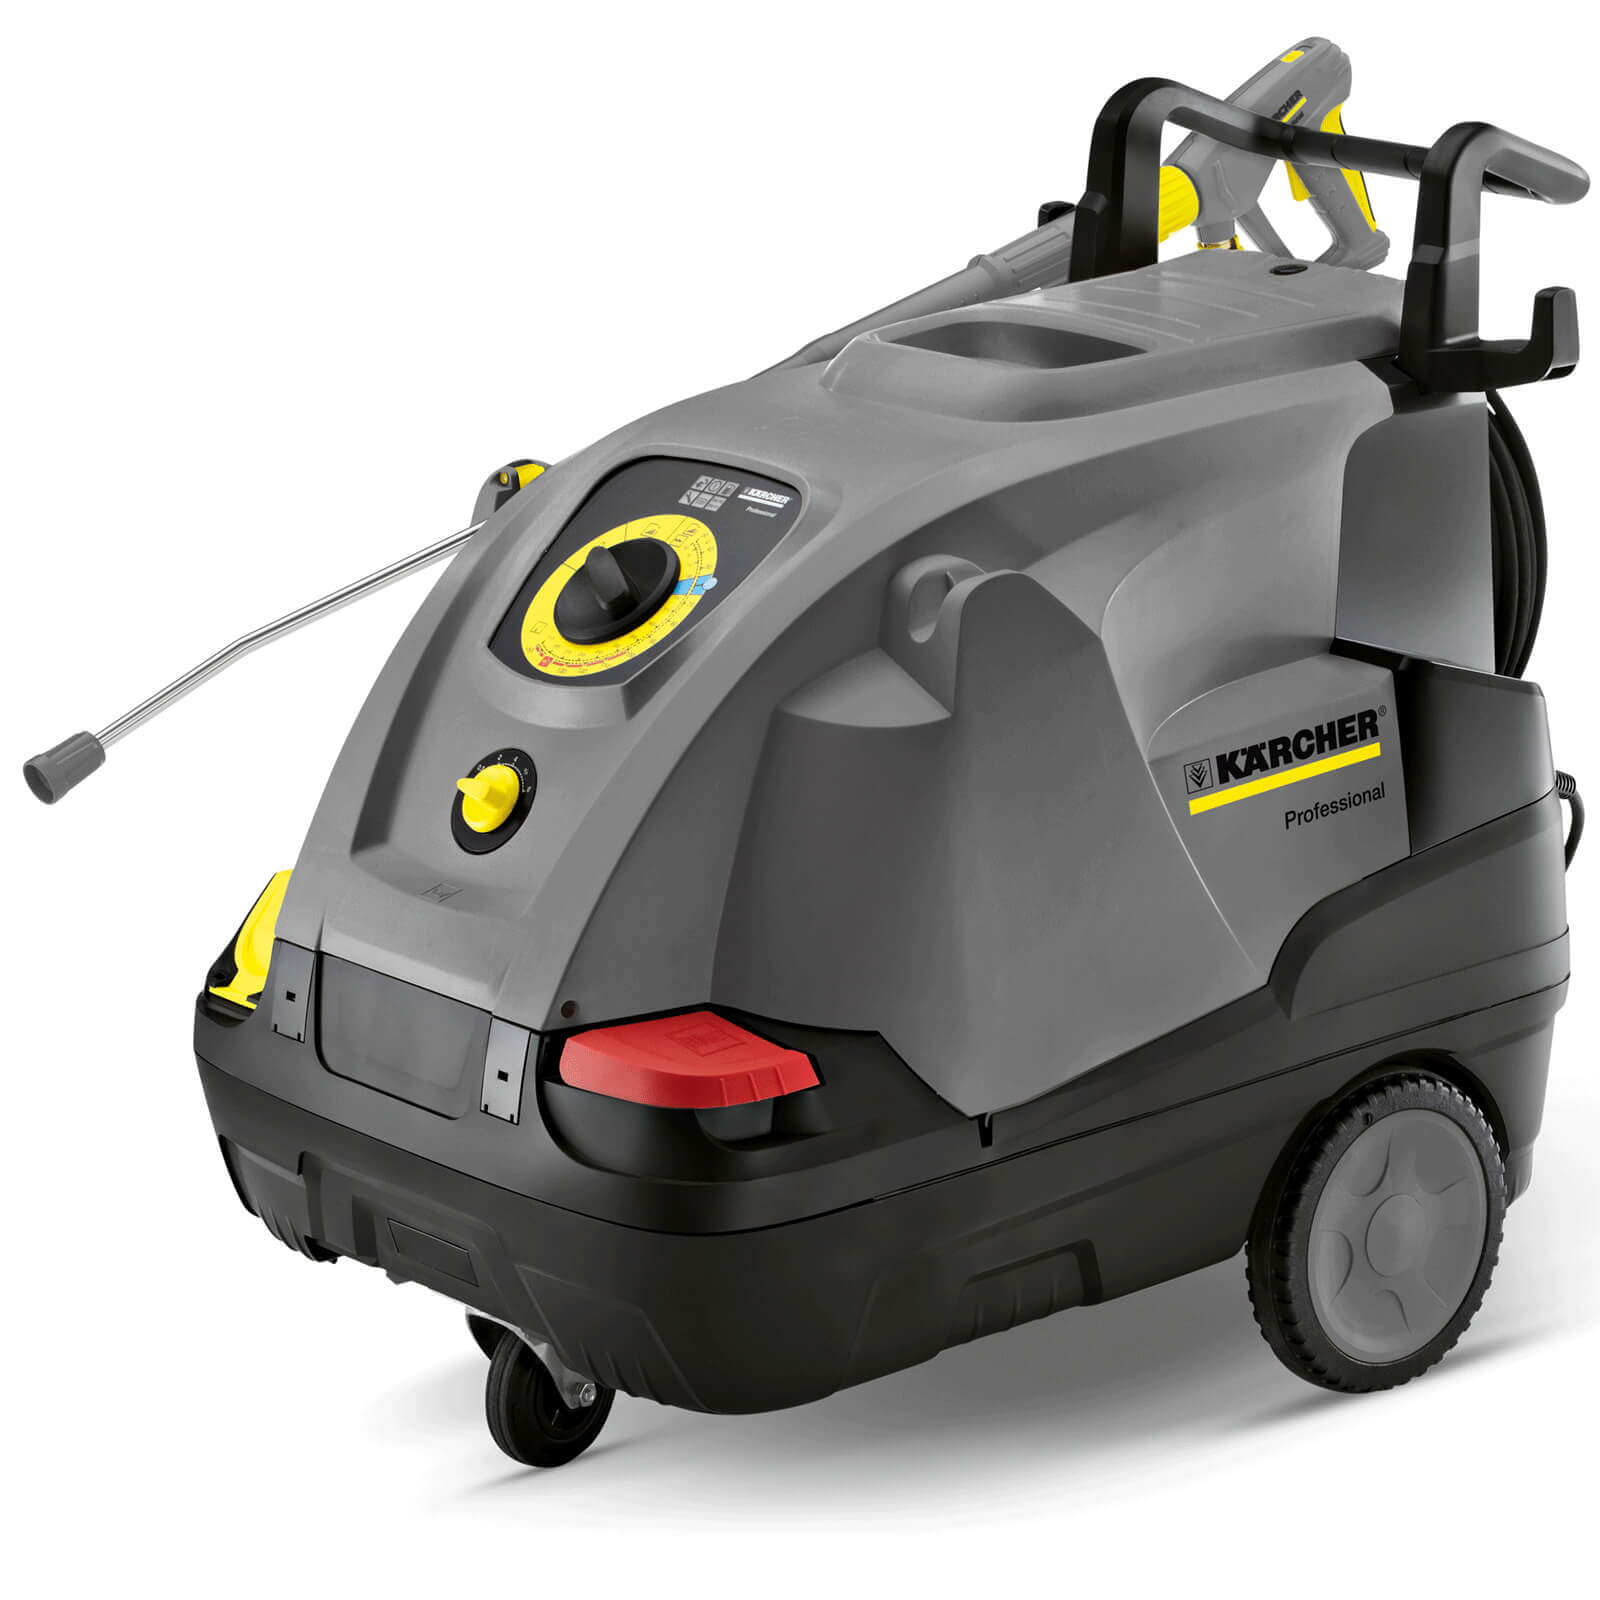 Karcher HDS 6/12 C Professional Hot Water Steam Pressure Washer 120 Bar FREE Foam Nozzle & Wet & Dry Worth £238.90